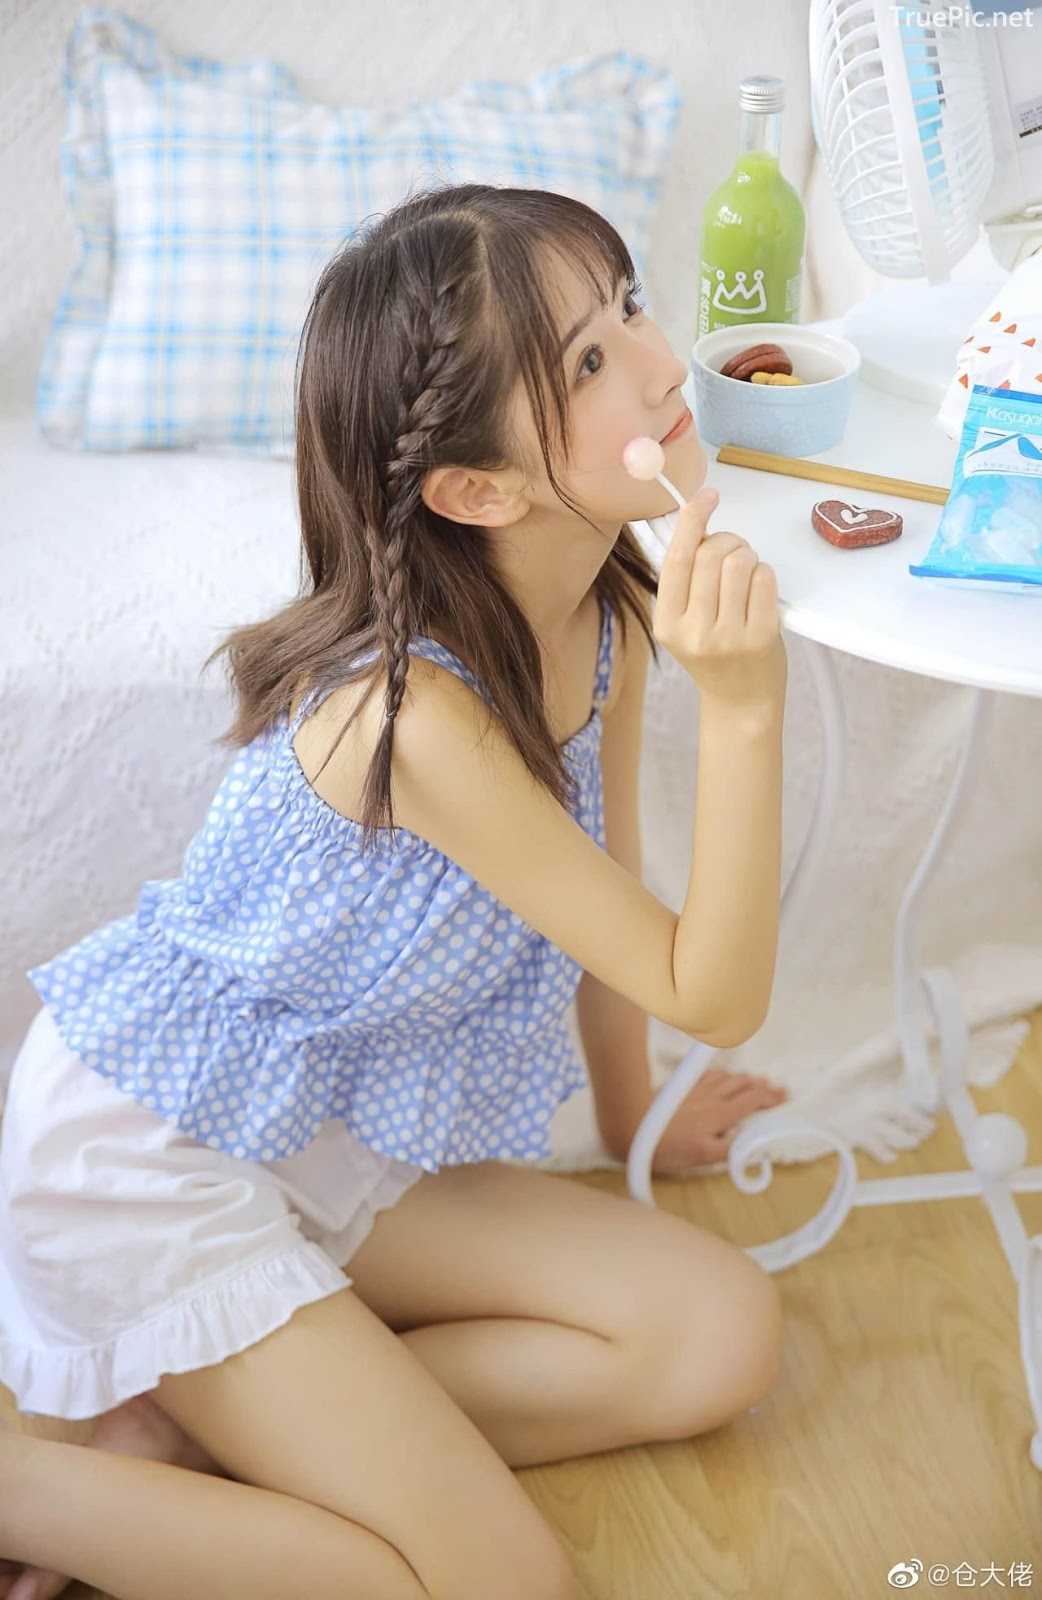 Chinese cute girl - She is a Beautiful sweet candy girl - TruePic.net - Picture 4